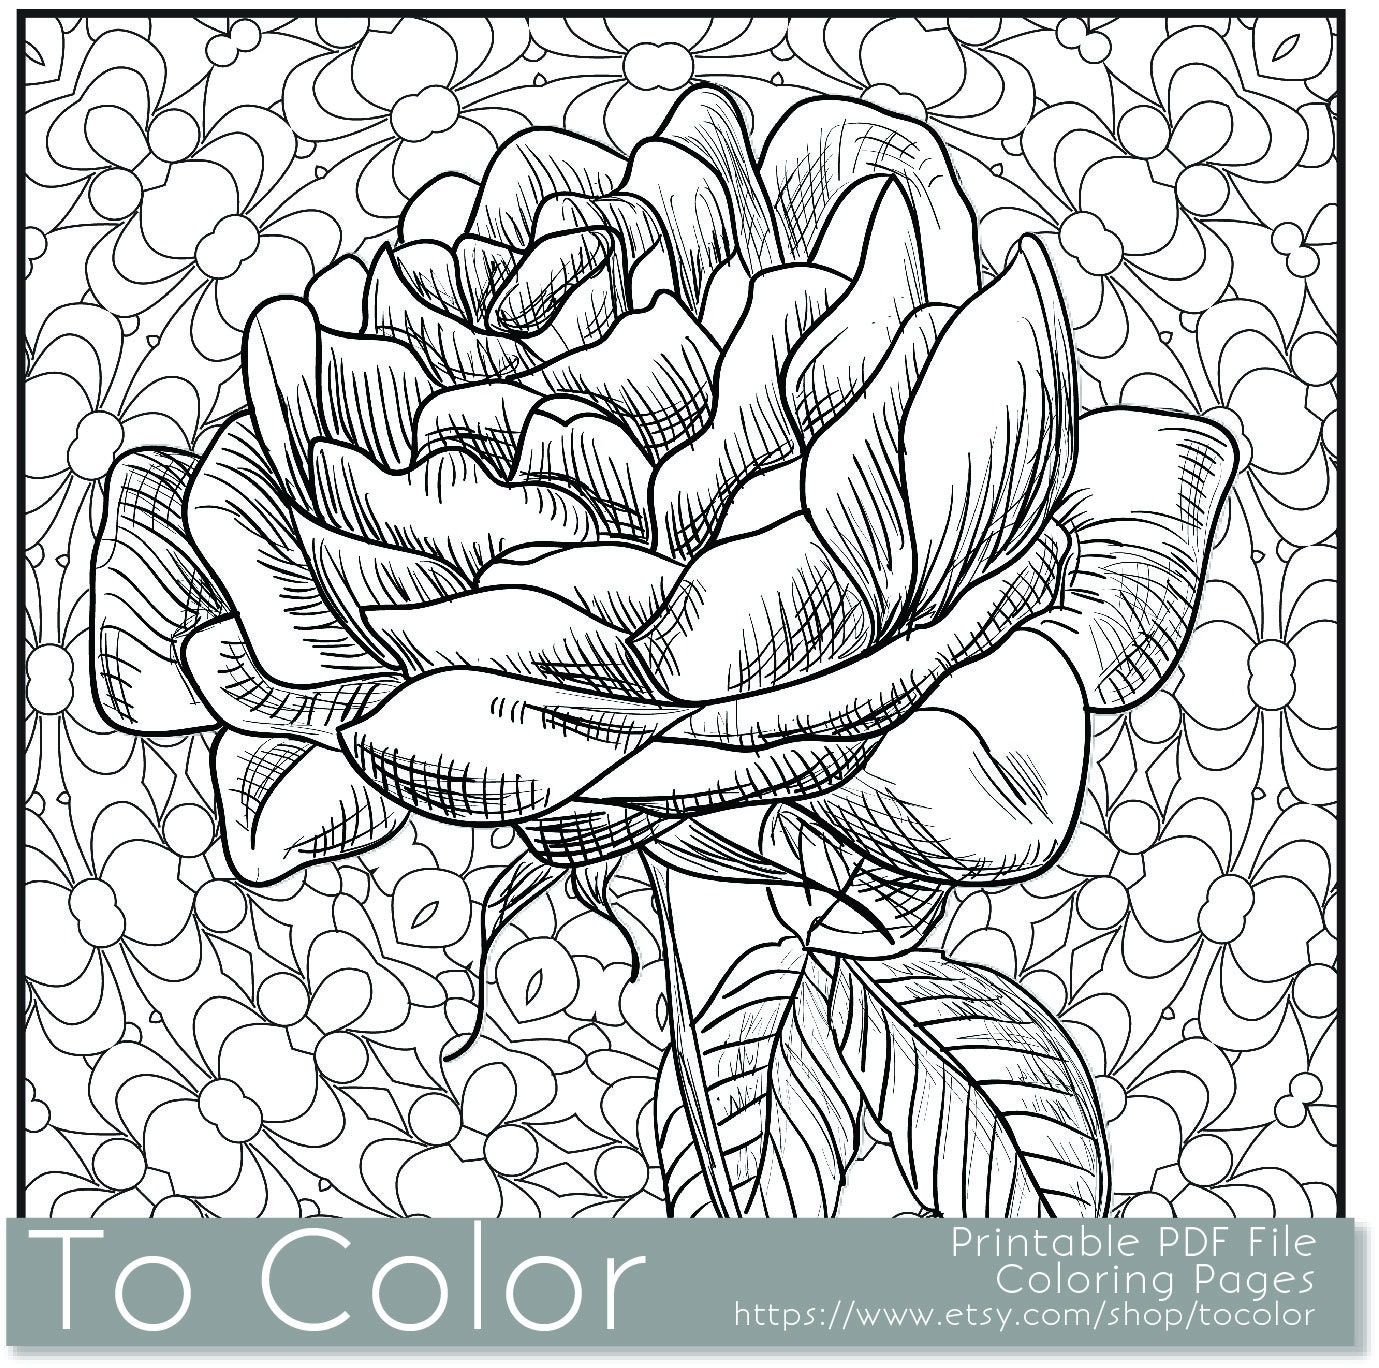 Coloring book pages pdf - Printable Coloring Pages Grown Ups Unique Flower Coloring Book Related Items Byrds Words Coloring Books